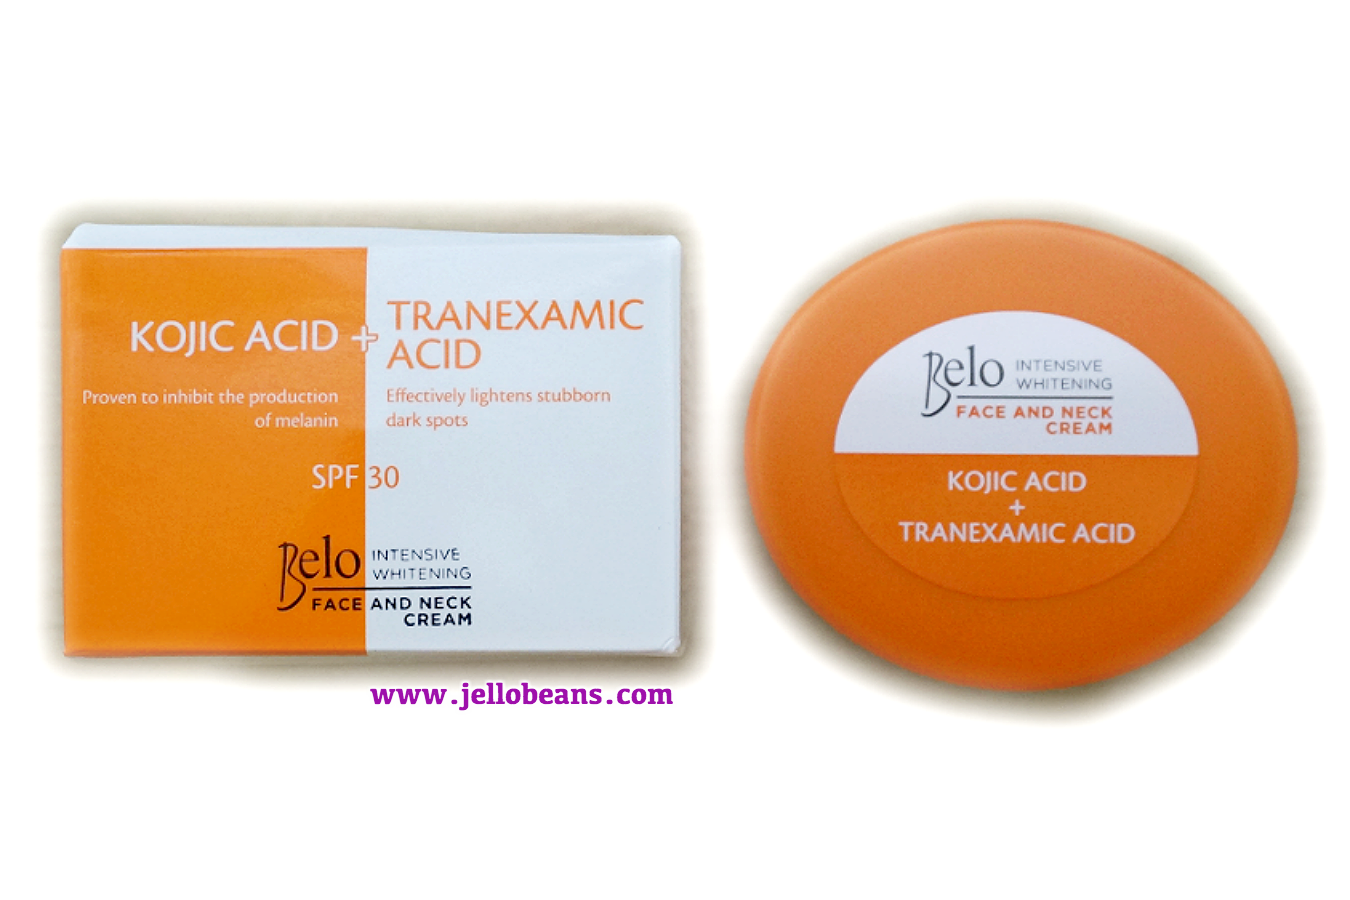 Belo Intensive Whitening Body Cream SPF 30 & Face and Neck